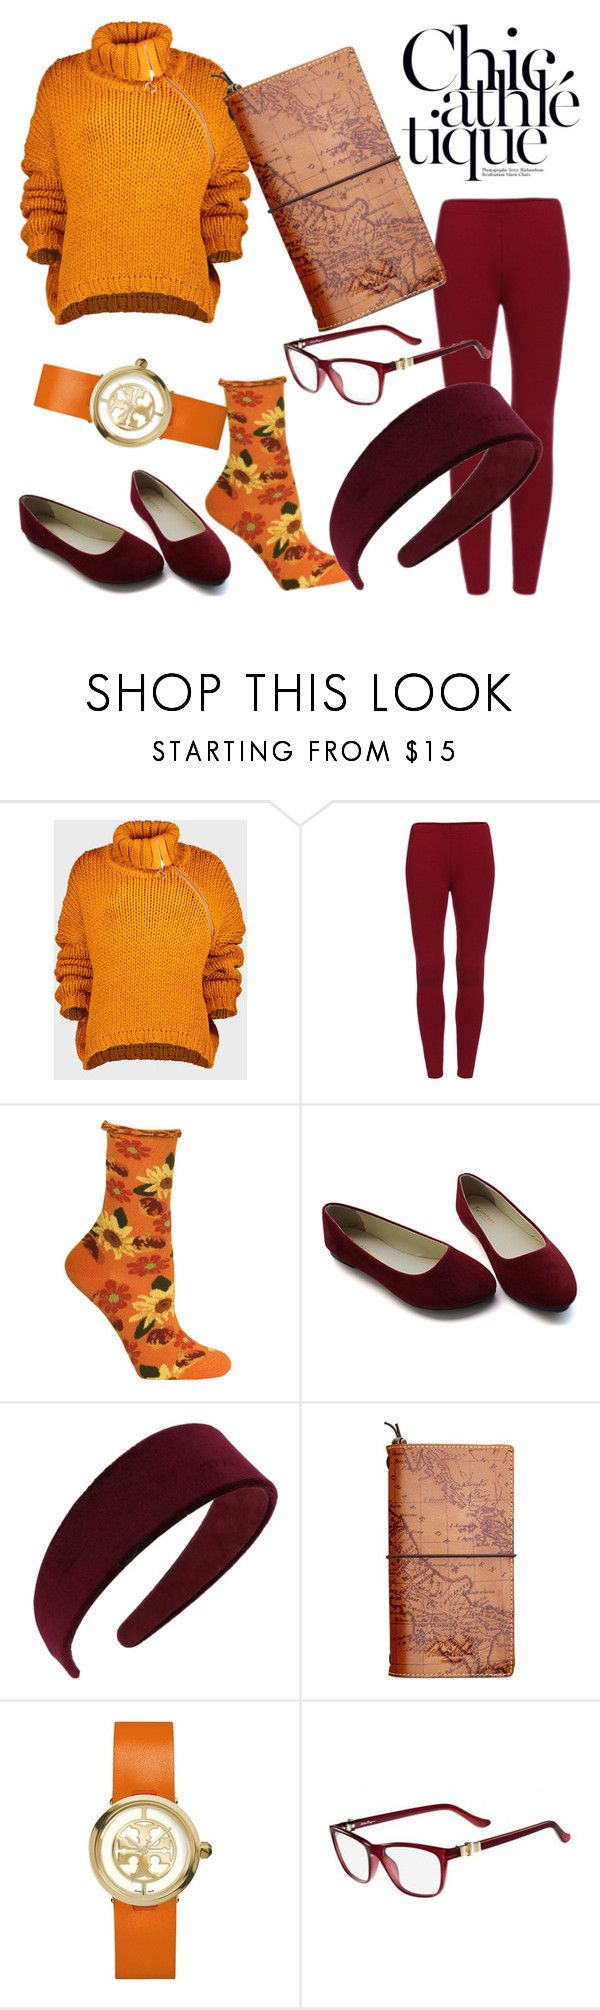 """Cozy chic"" by kiara-ik ❤ liked on Polyvore featuring Marques'Almeida, Ozone, Miss Selfridge, Patricia Nash, Tory Burch and Salvatore Ferragamo"